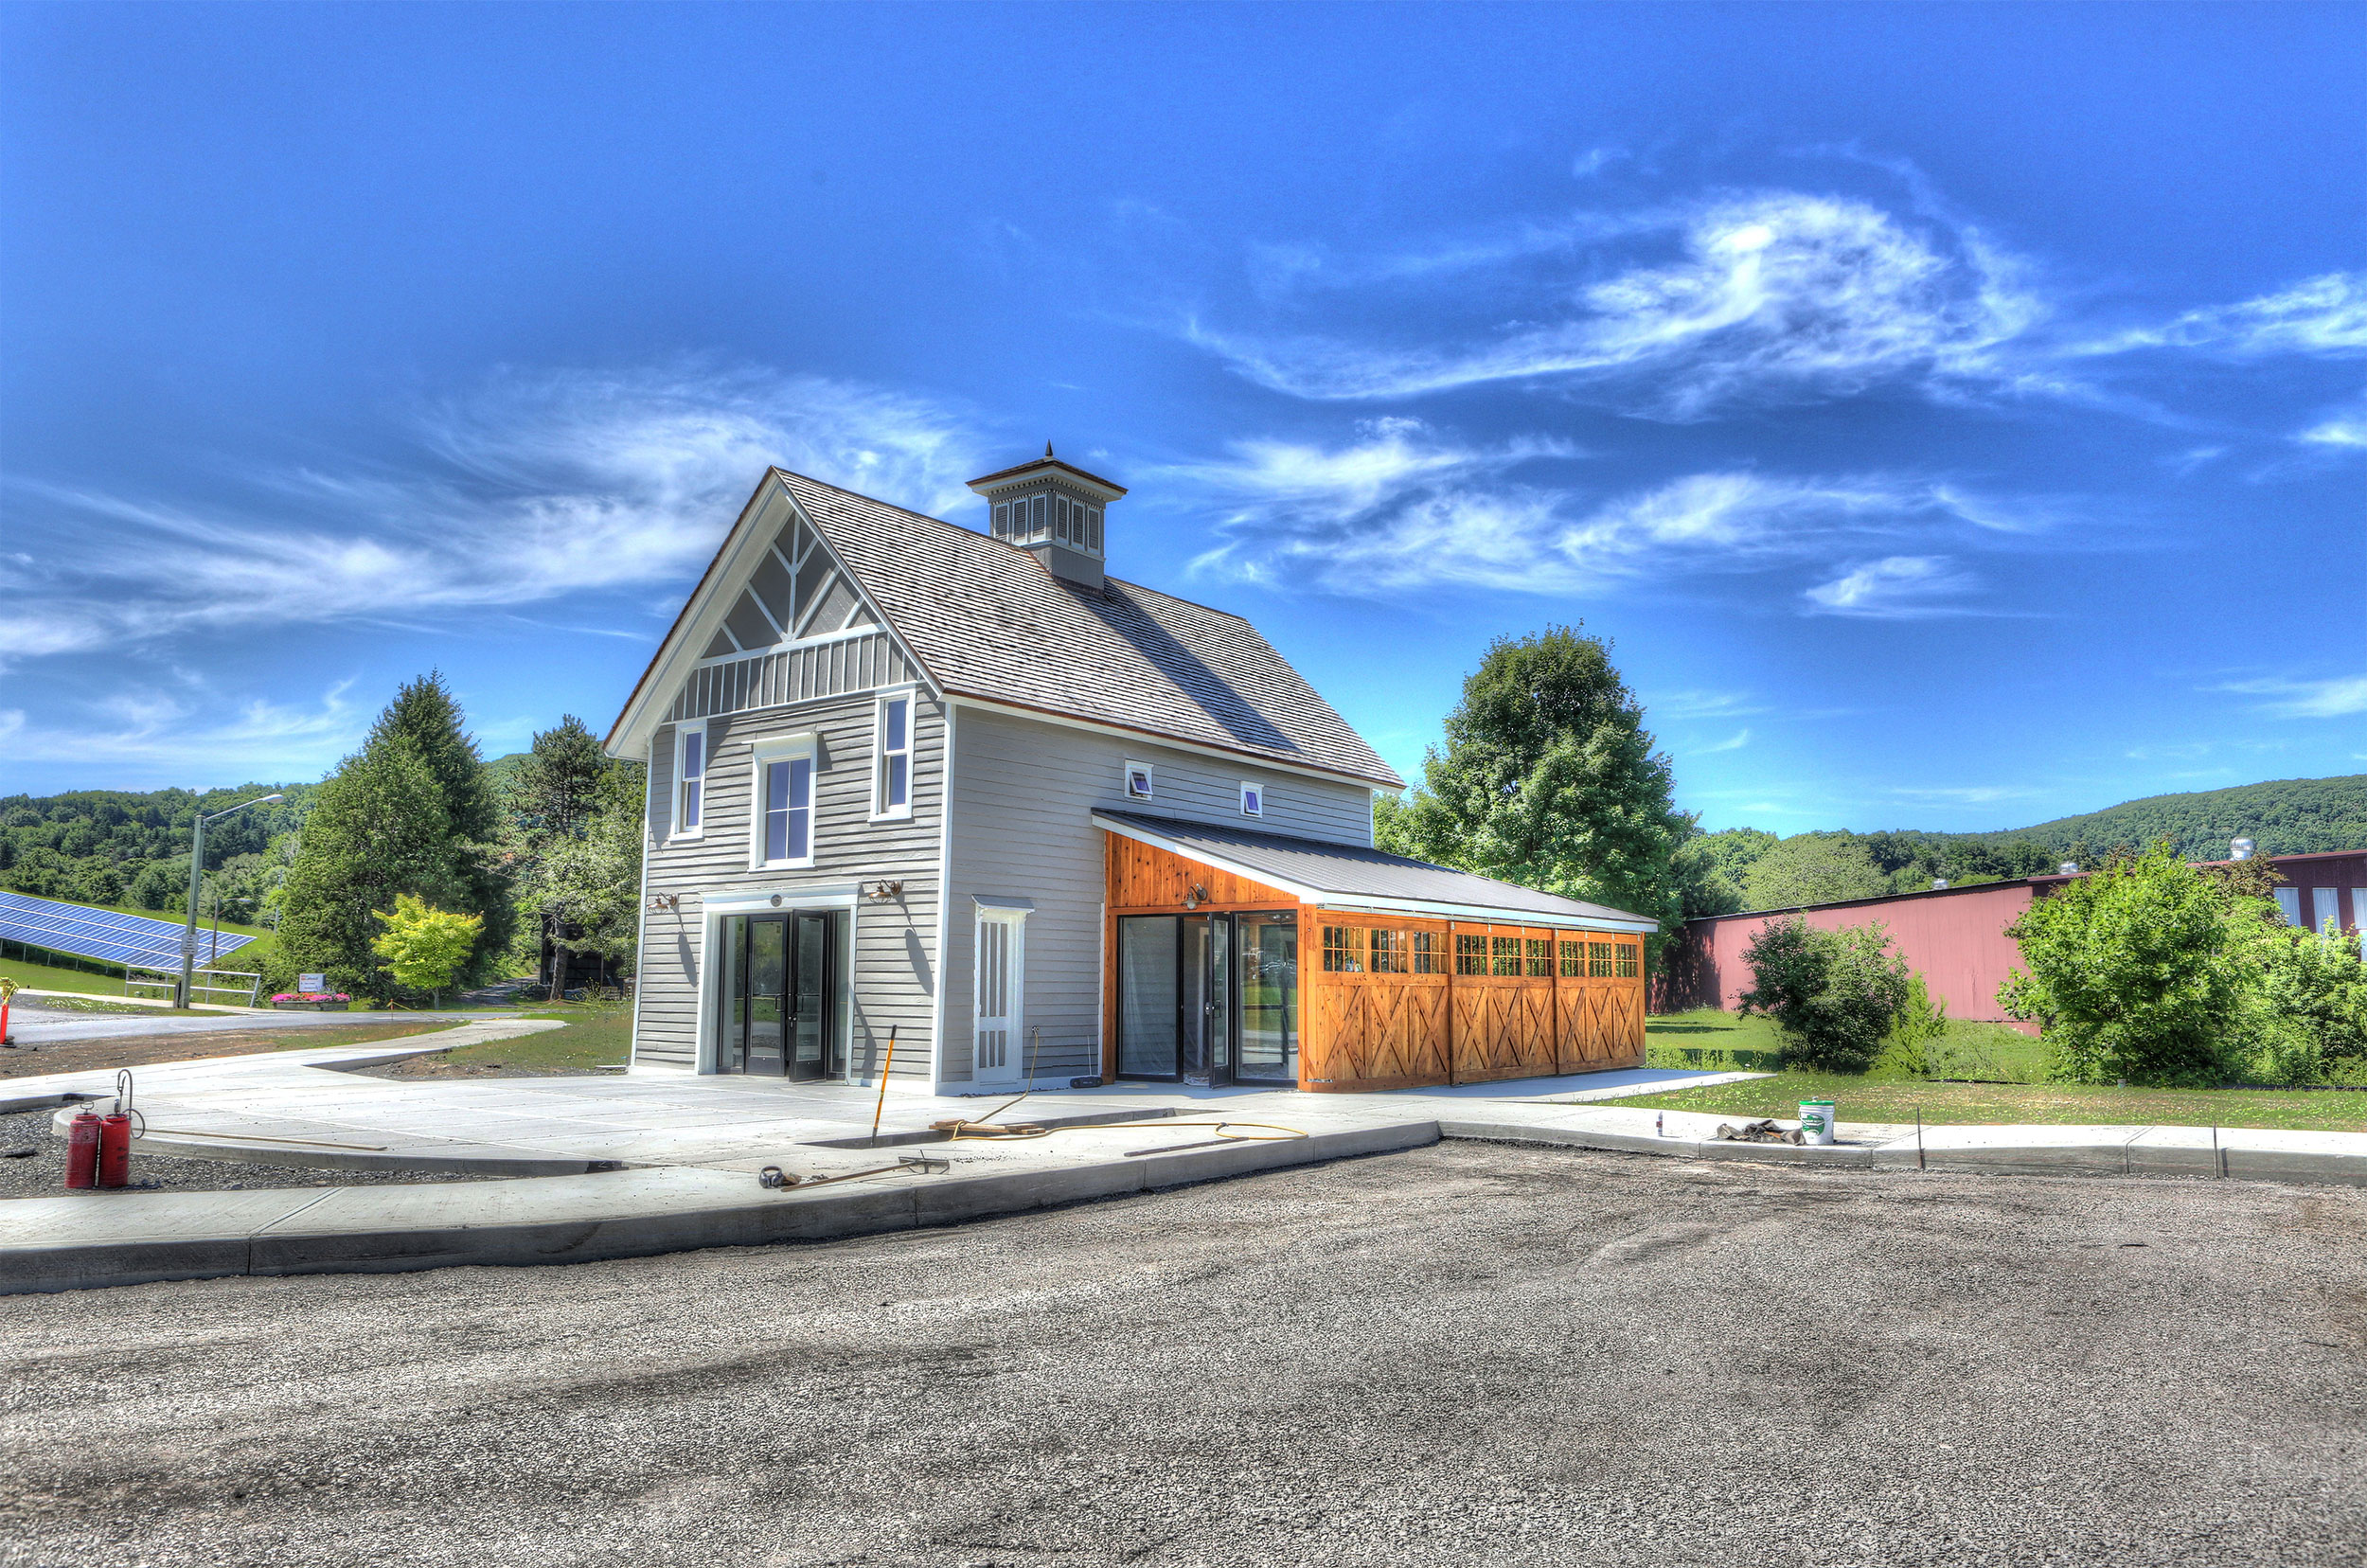 Coblsekill cafe and general store exterior with solar panels on the grass to the left side.